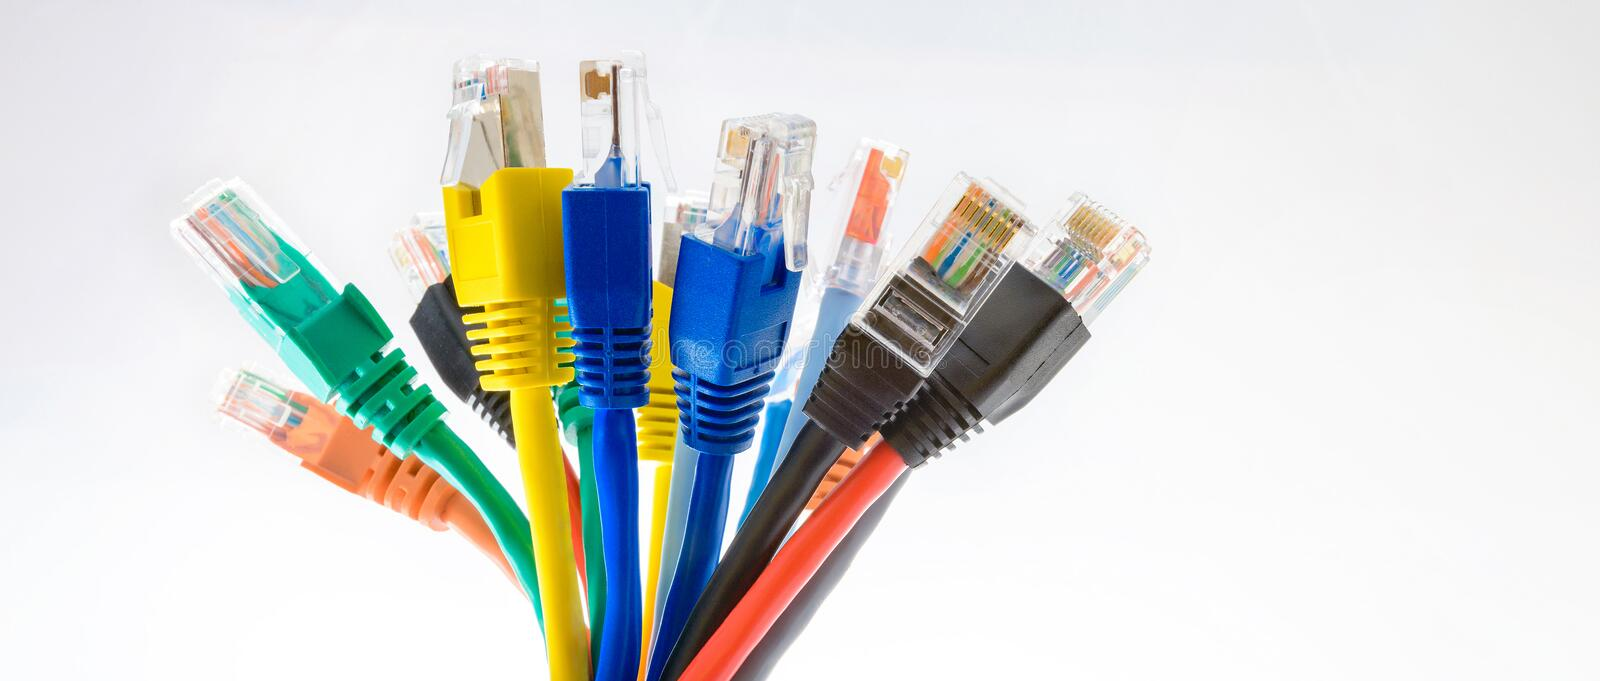 Colorful ethernet patch cords with RJ-45 connectors. In a bunch on the white background stock image